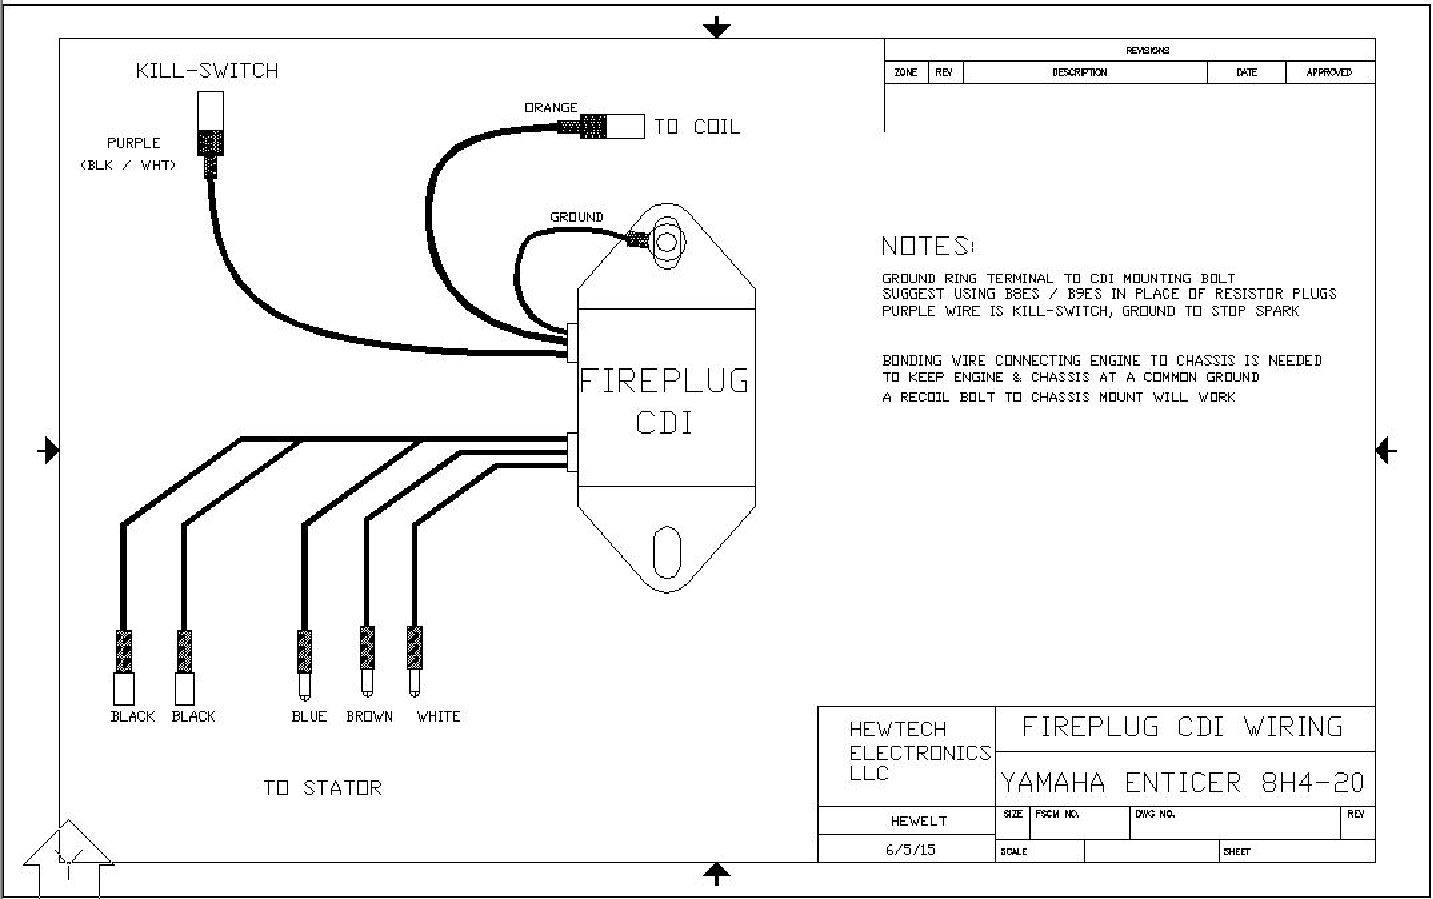 1977 yamaha enticer 250 wiring diagram auto electrical wiring diagram 1977 yamaha enticer 250 wiring diagram